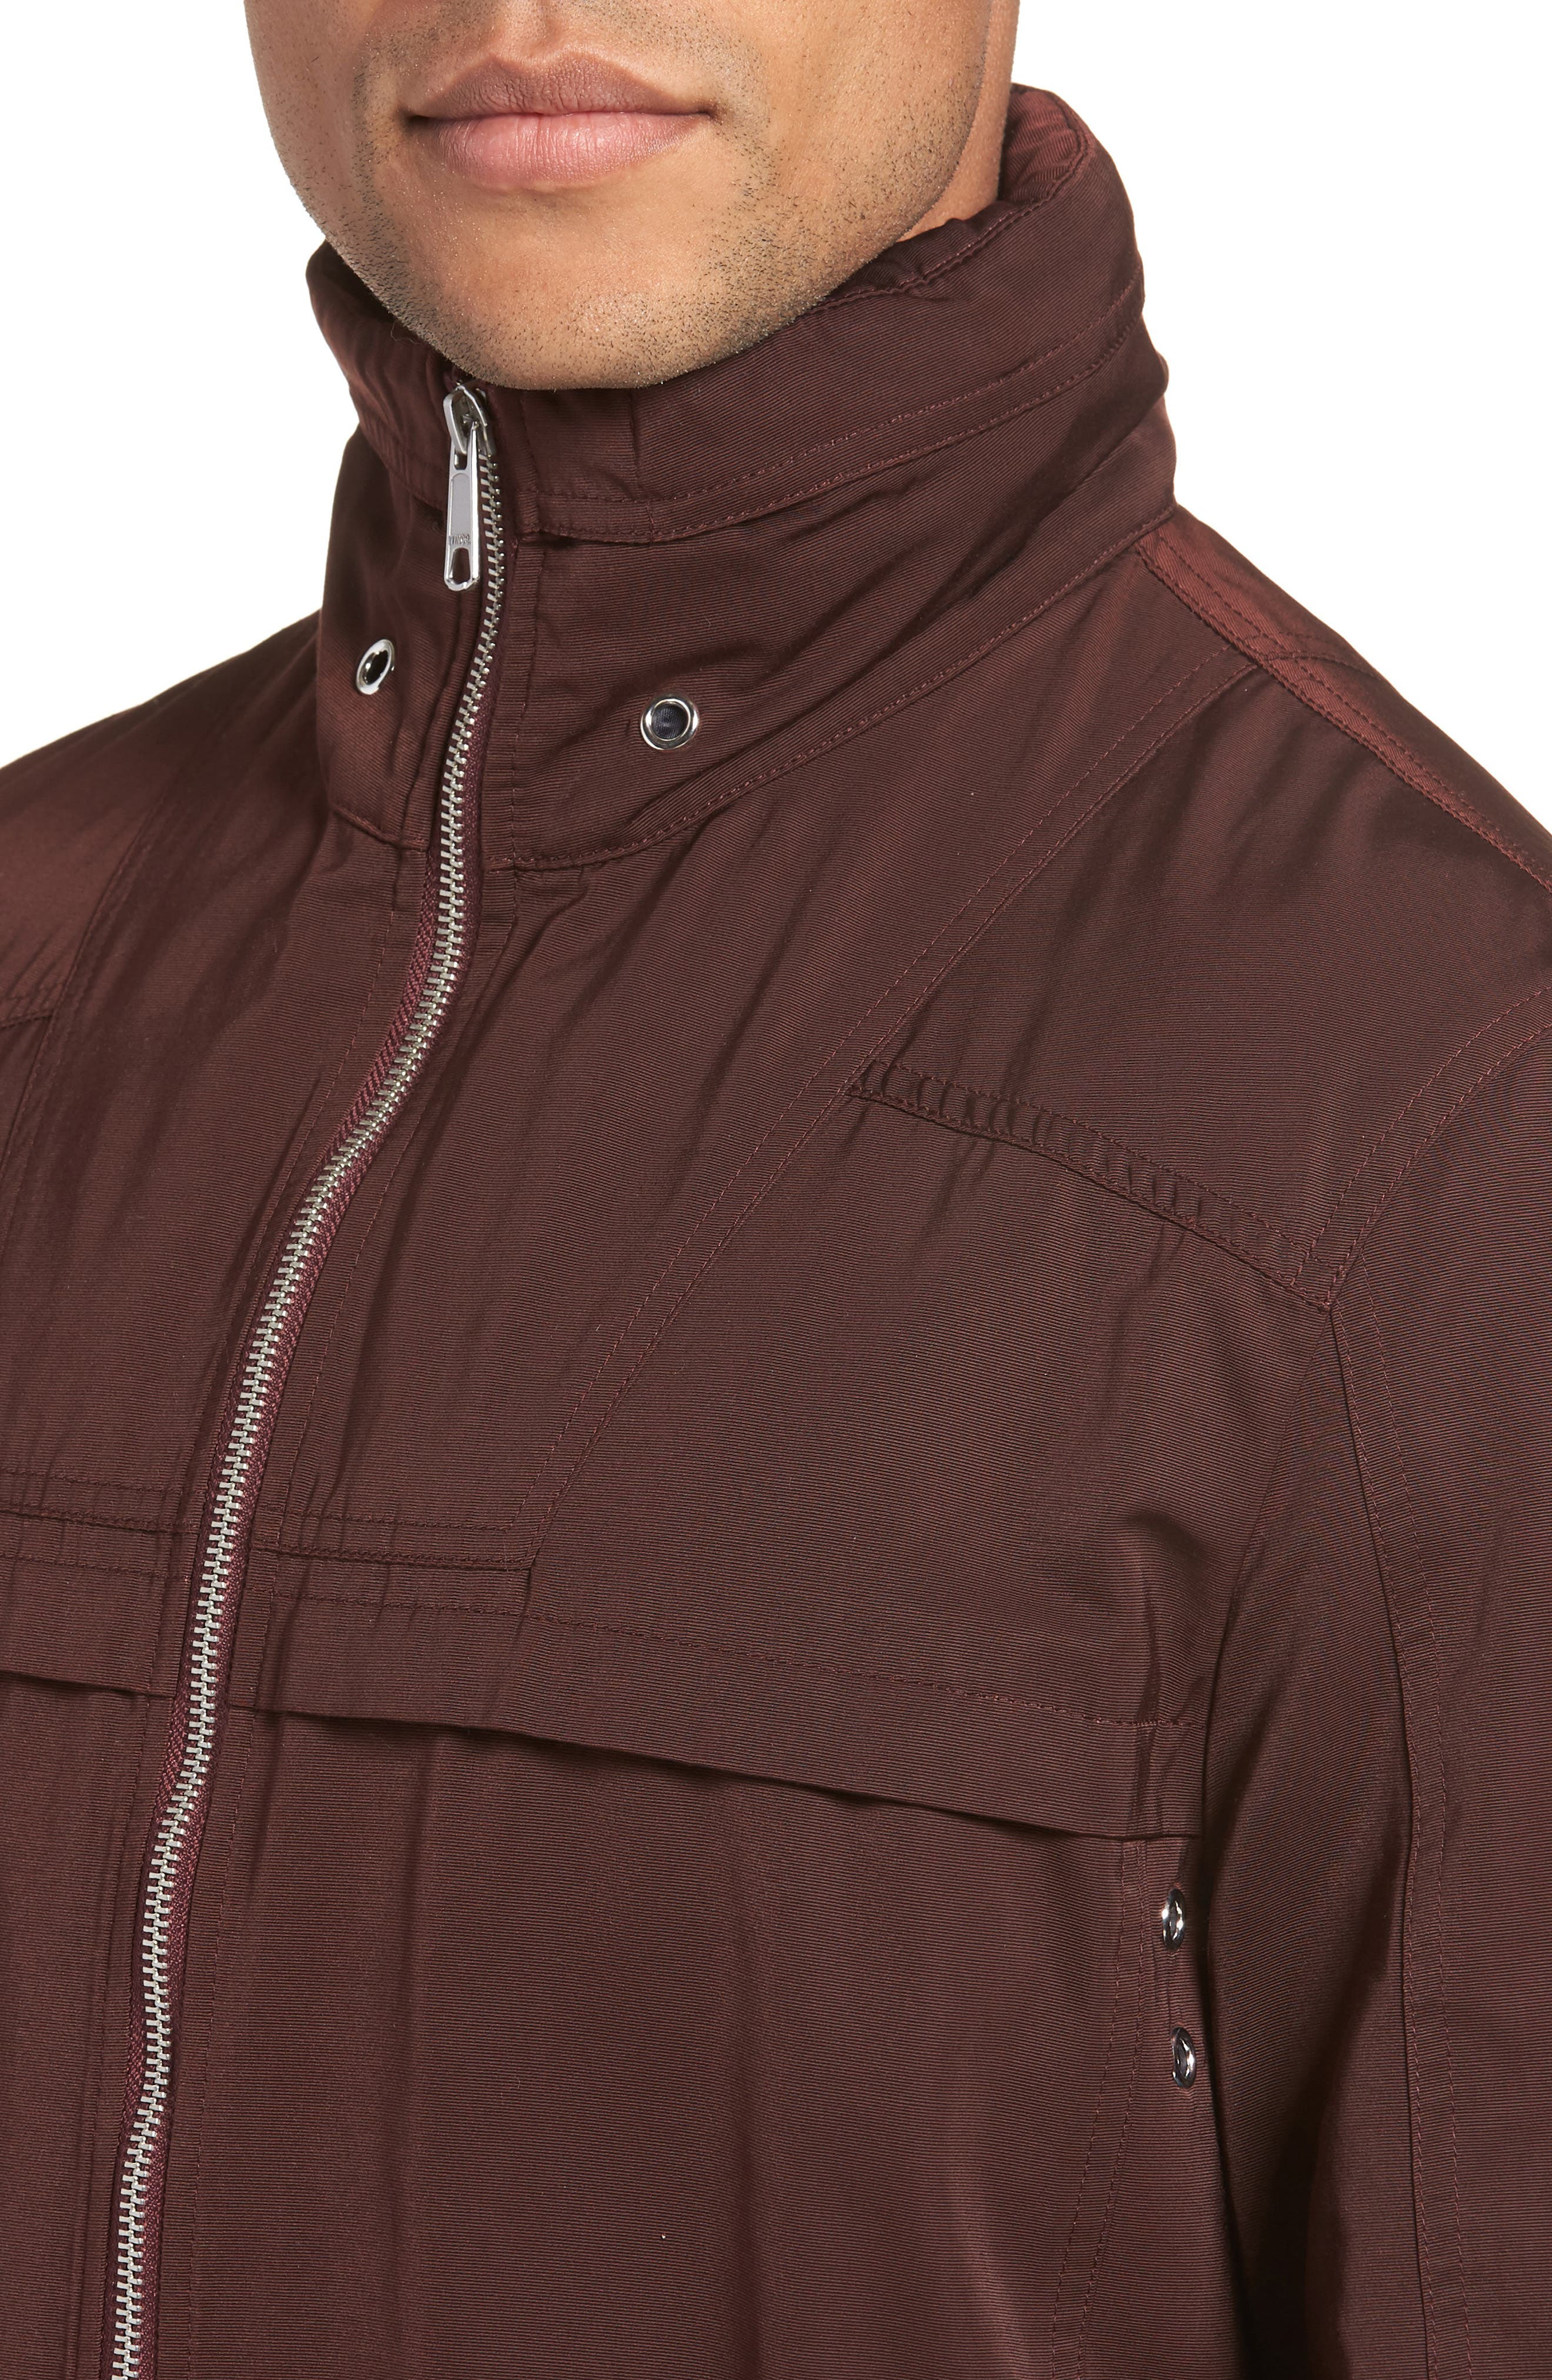 Zip Front Regular Fit Jacket,                             Alternate thumbnail 4, color,                             930